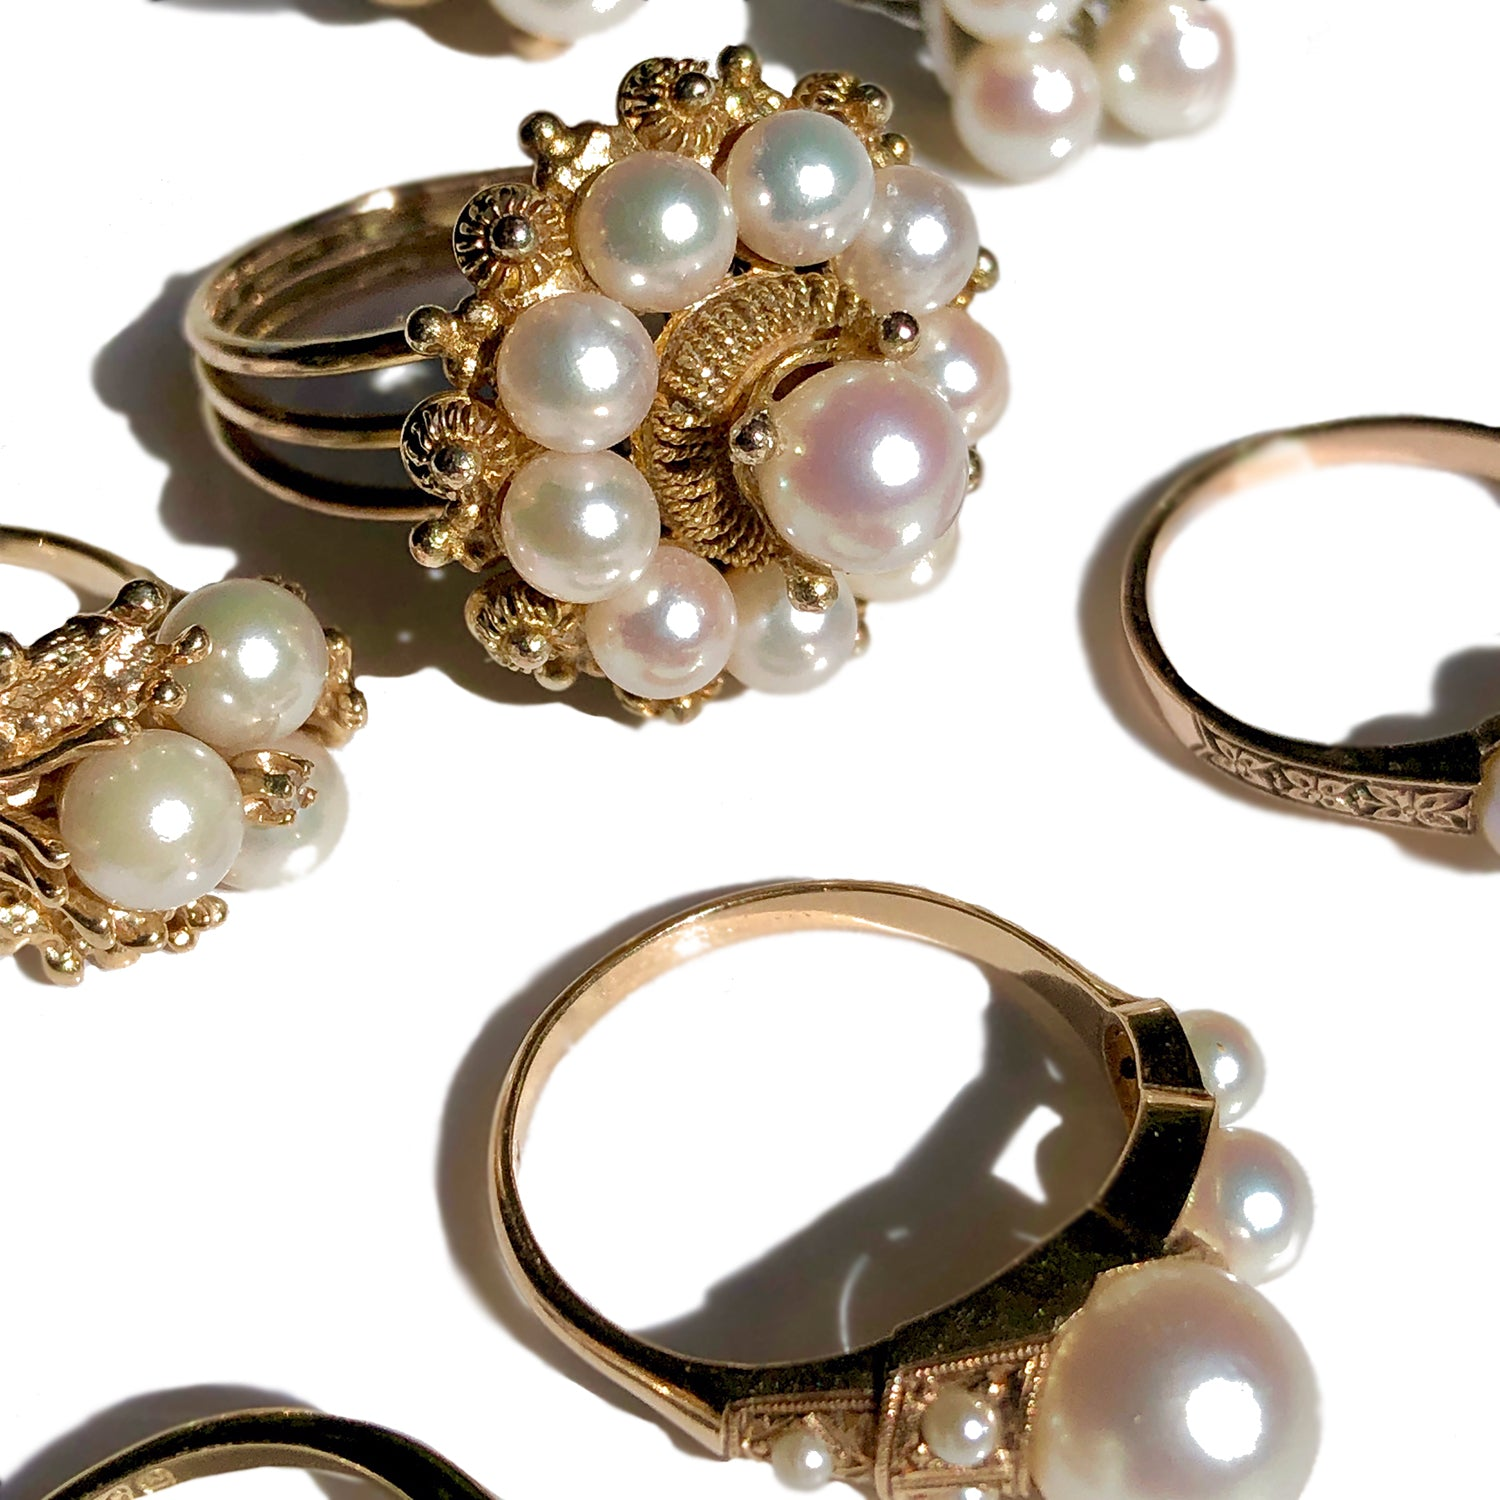 Vintage Pearl Rings in Gold